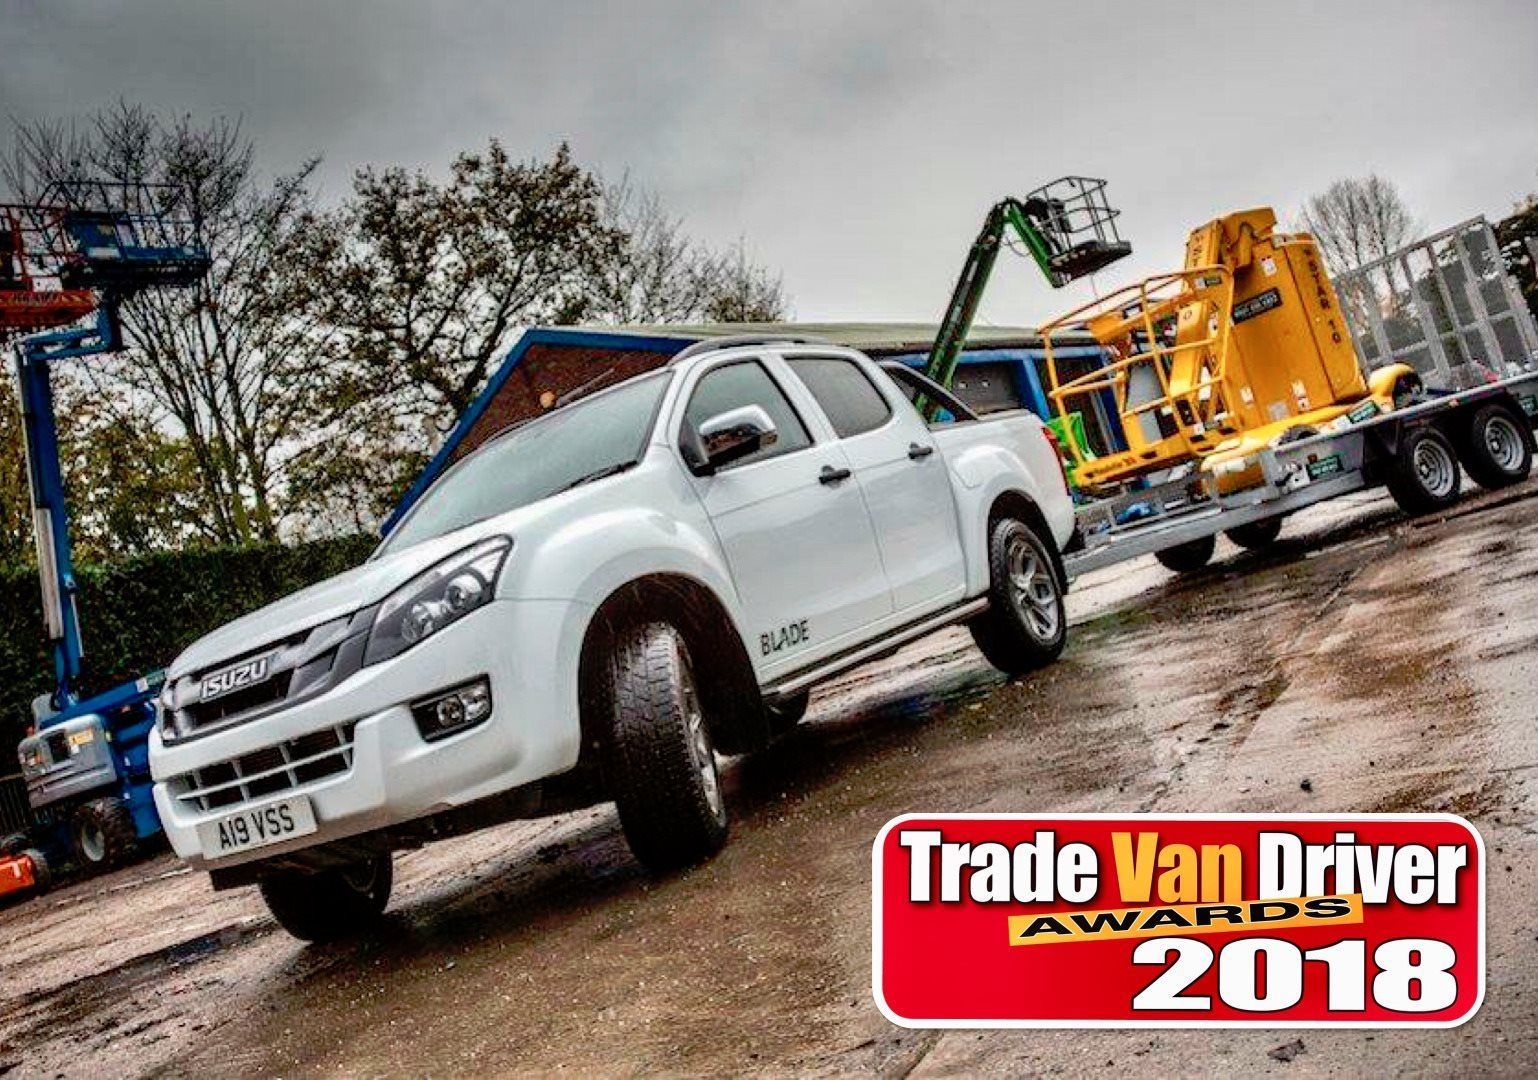 AWARD WINNING D-MAX TRIUMPHS AT 2018 TRADE VAN DRIVER AWARDS